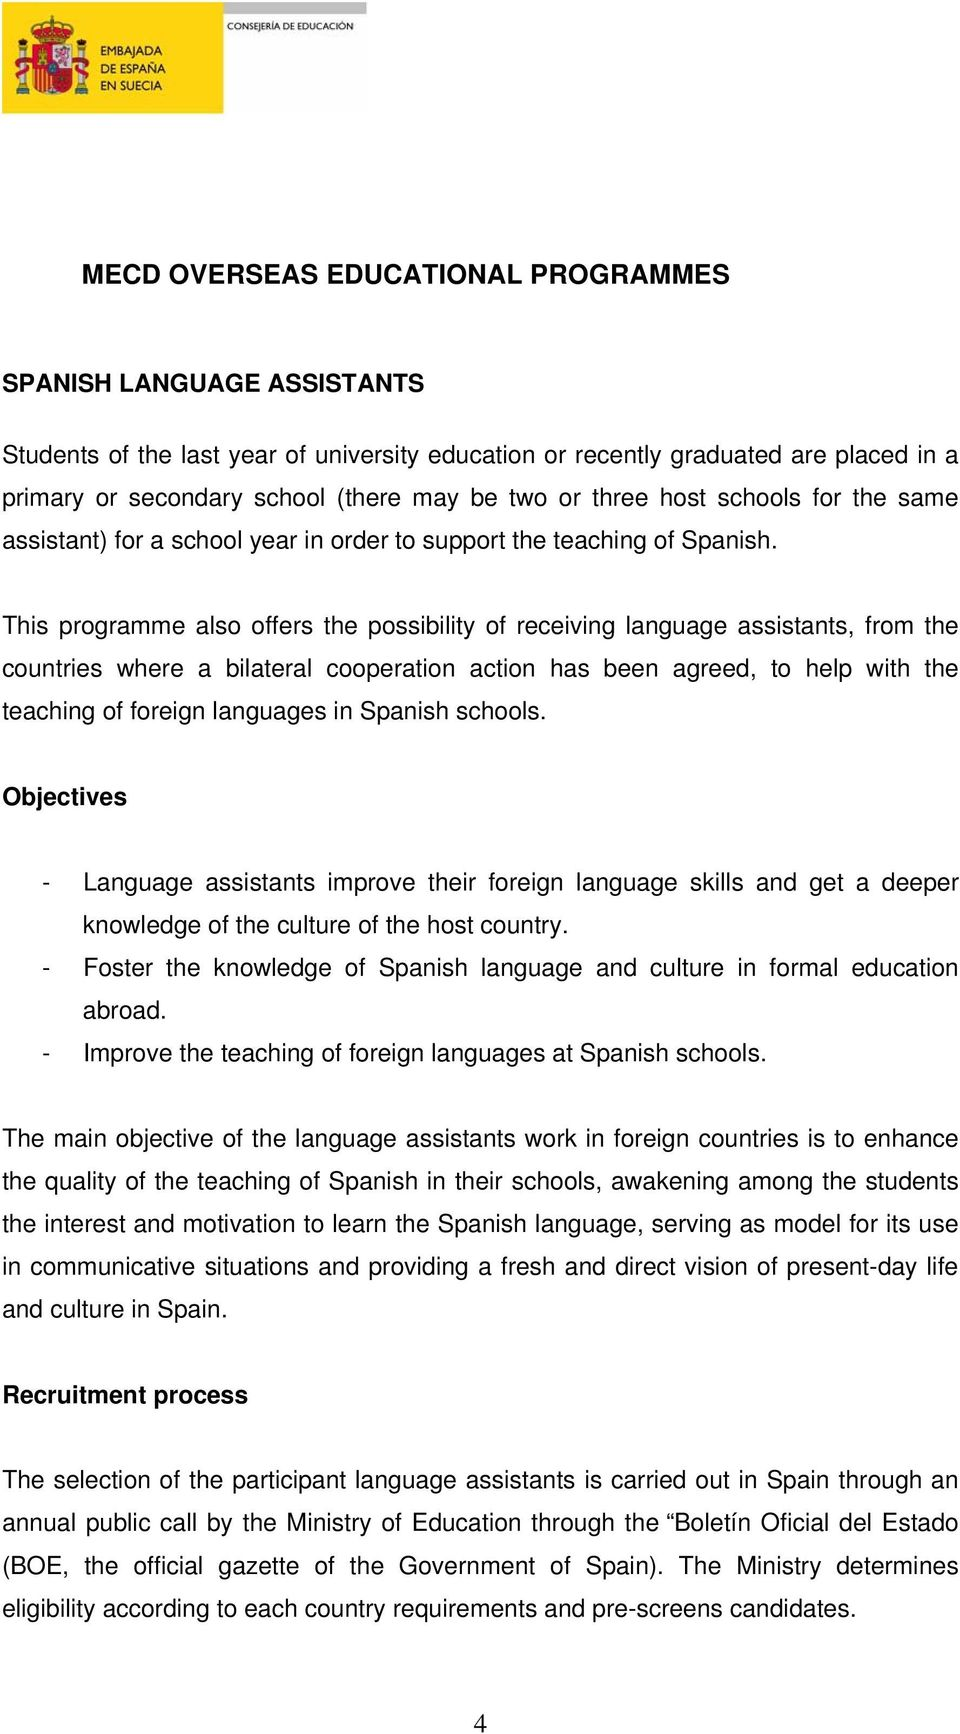 This programme also offers the possibility of receiving language assistants, from the countries where a bilateral cooperation action has been agreed, to help with the teaching of foreign languages in